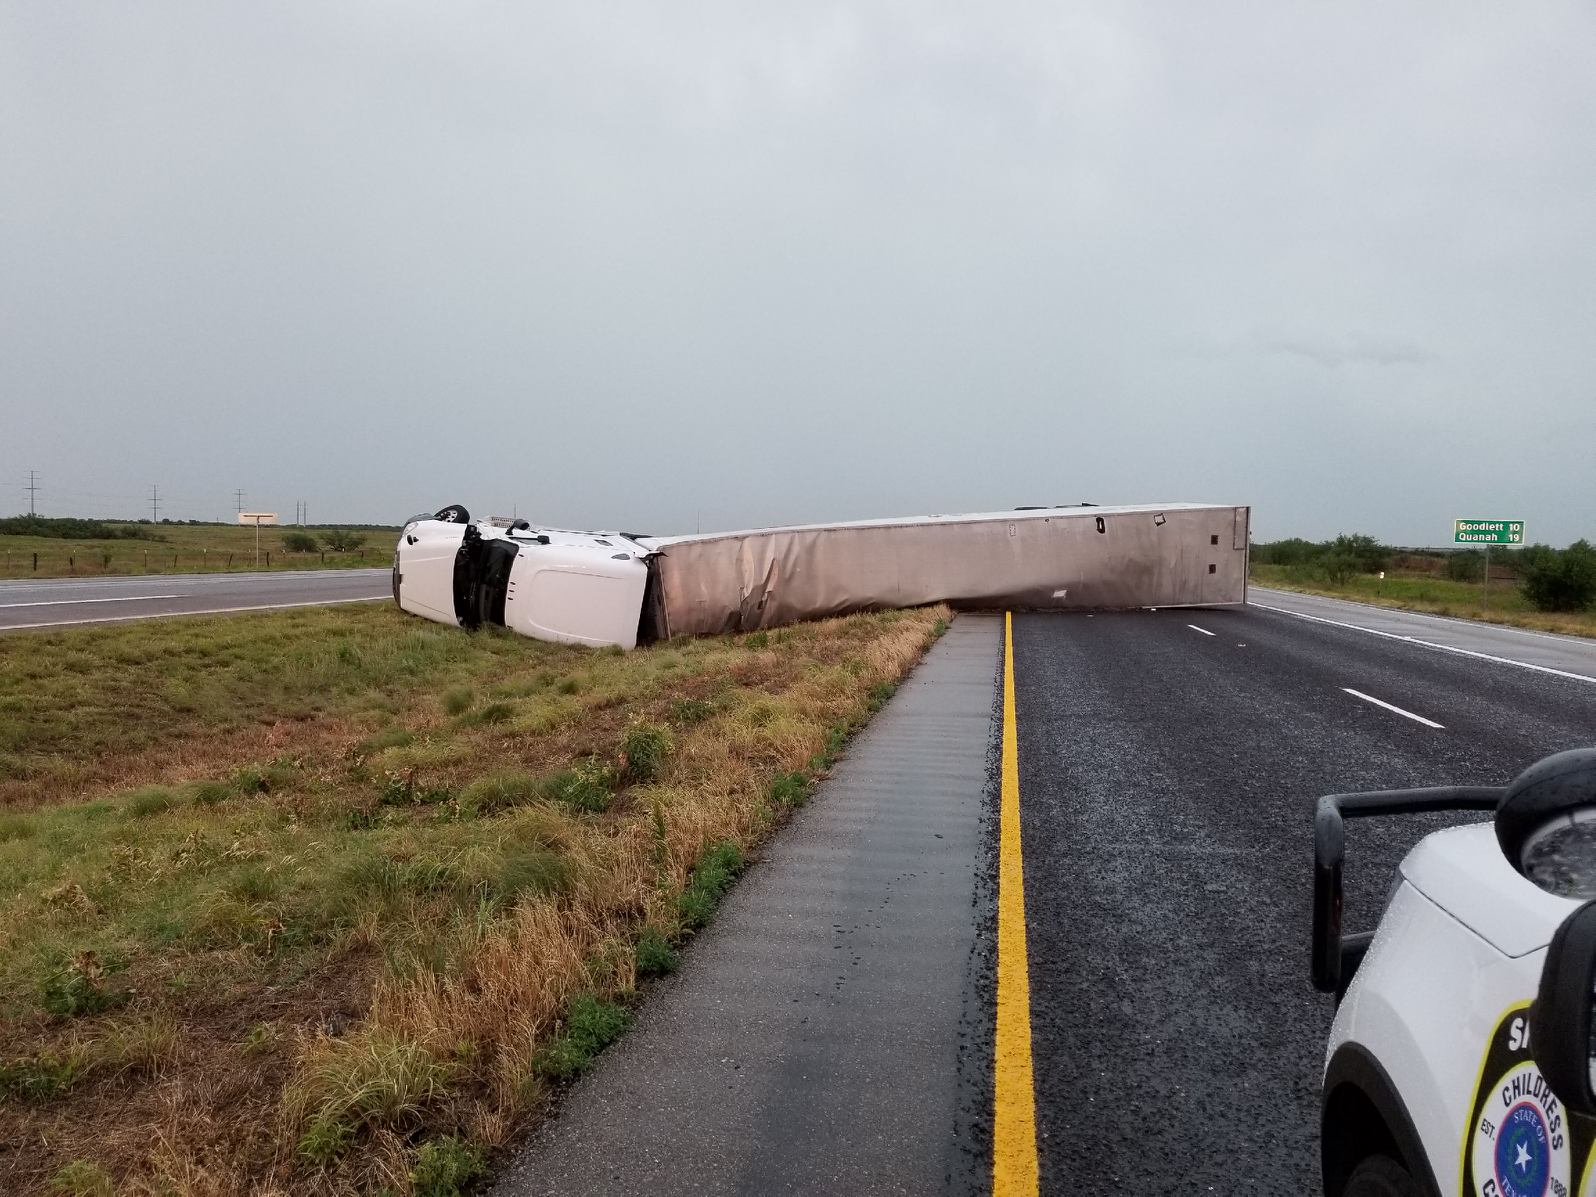 Tractor trailer blown over near Kirkland, on Highway 287, on the evening of 7 June 2018.